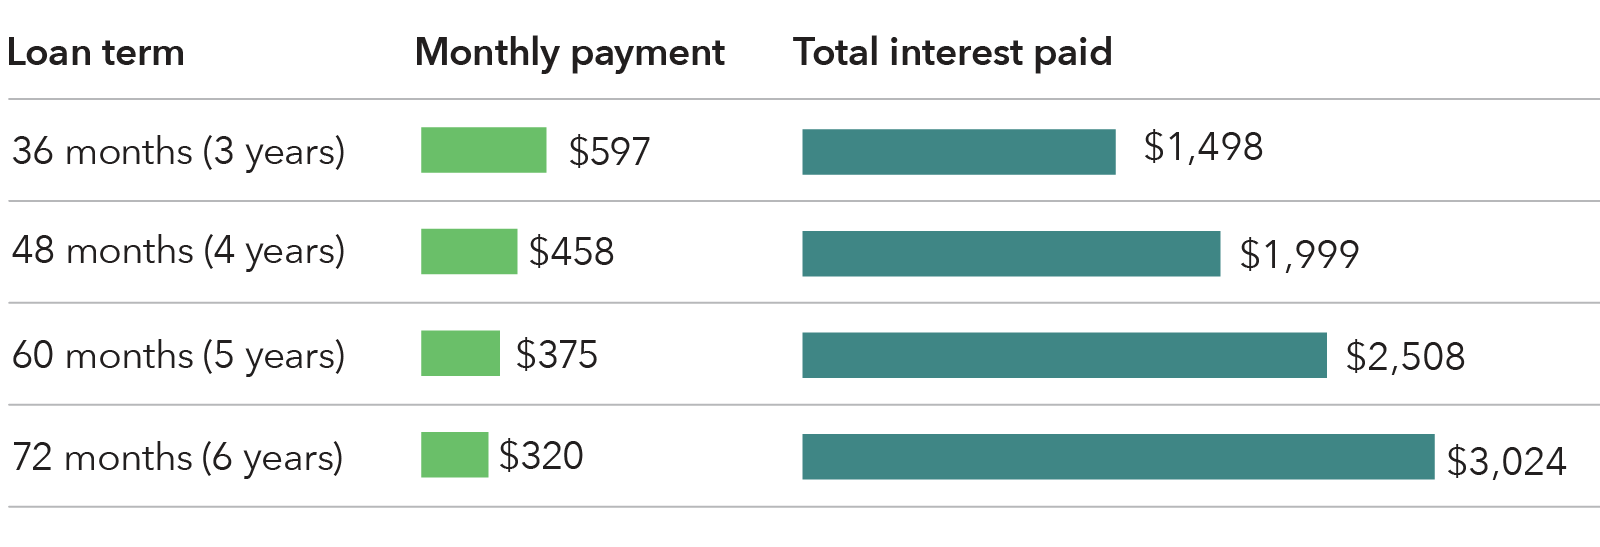 Chart showing monthly payments and total interest for different loan terms